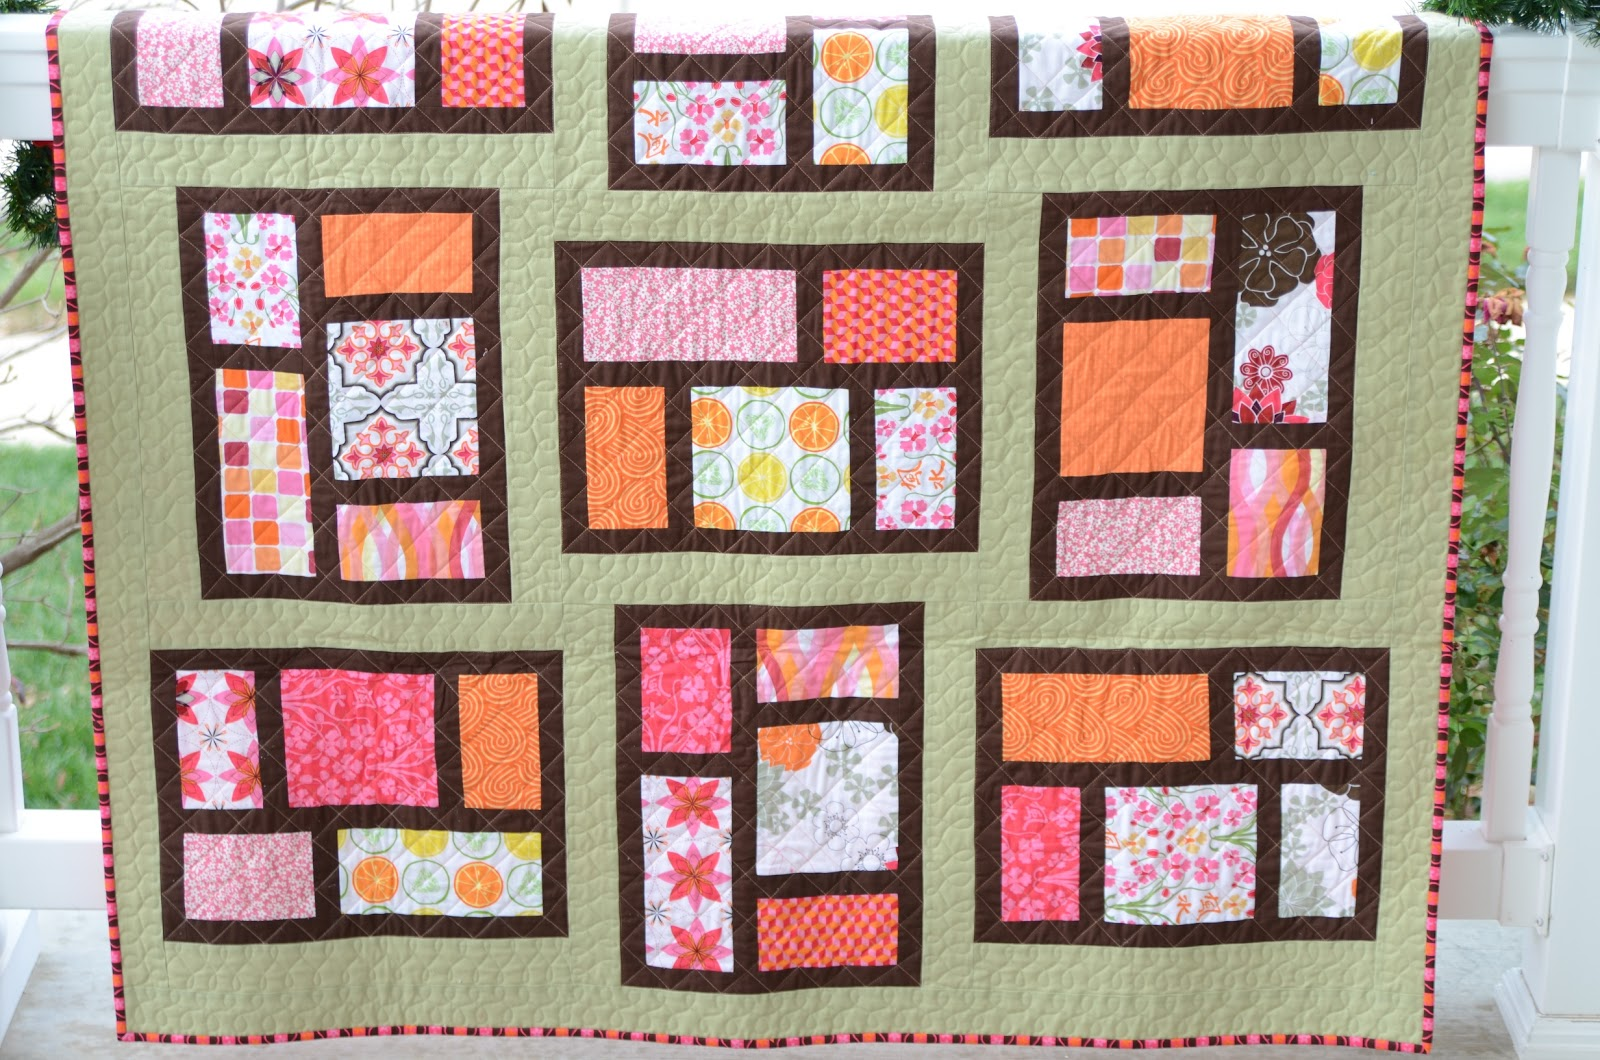 Hyacinth quilt designs kitchen window quilt for Kitchen quilting ideas